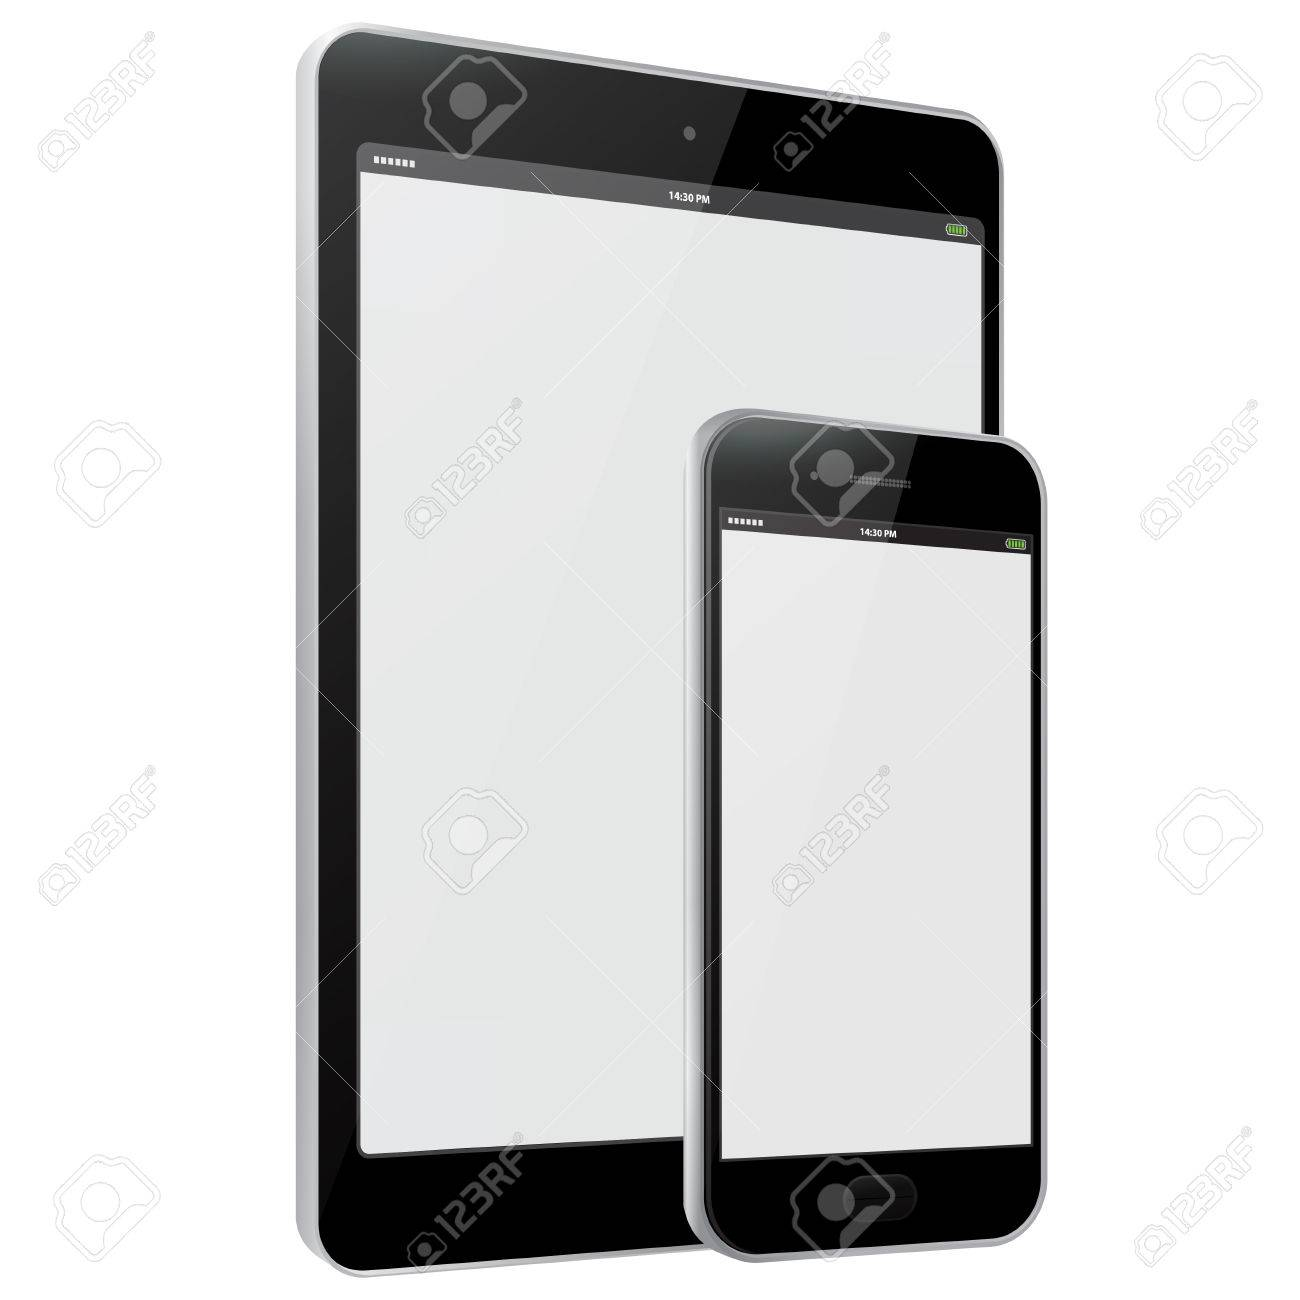 Mobile Phone and Tablet PC Vector illustration - 47256577